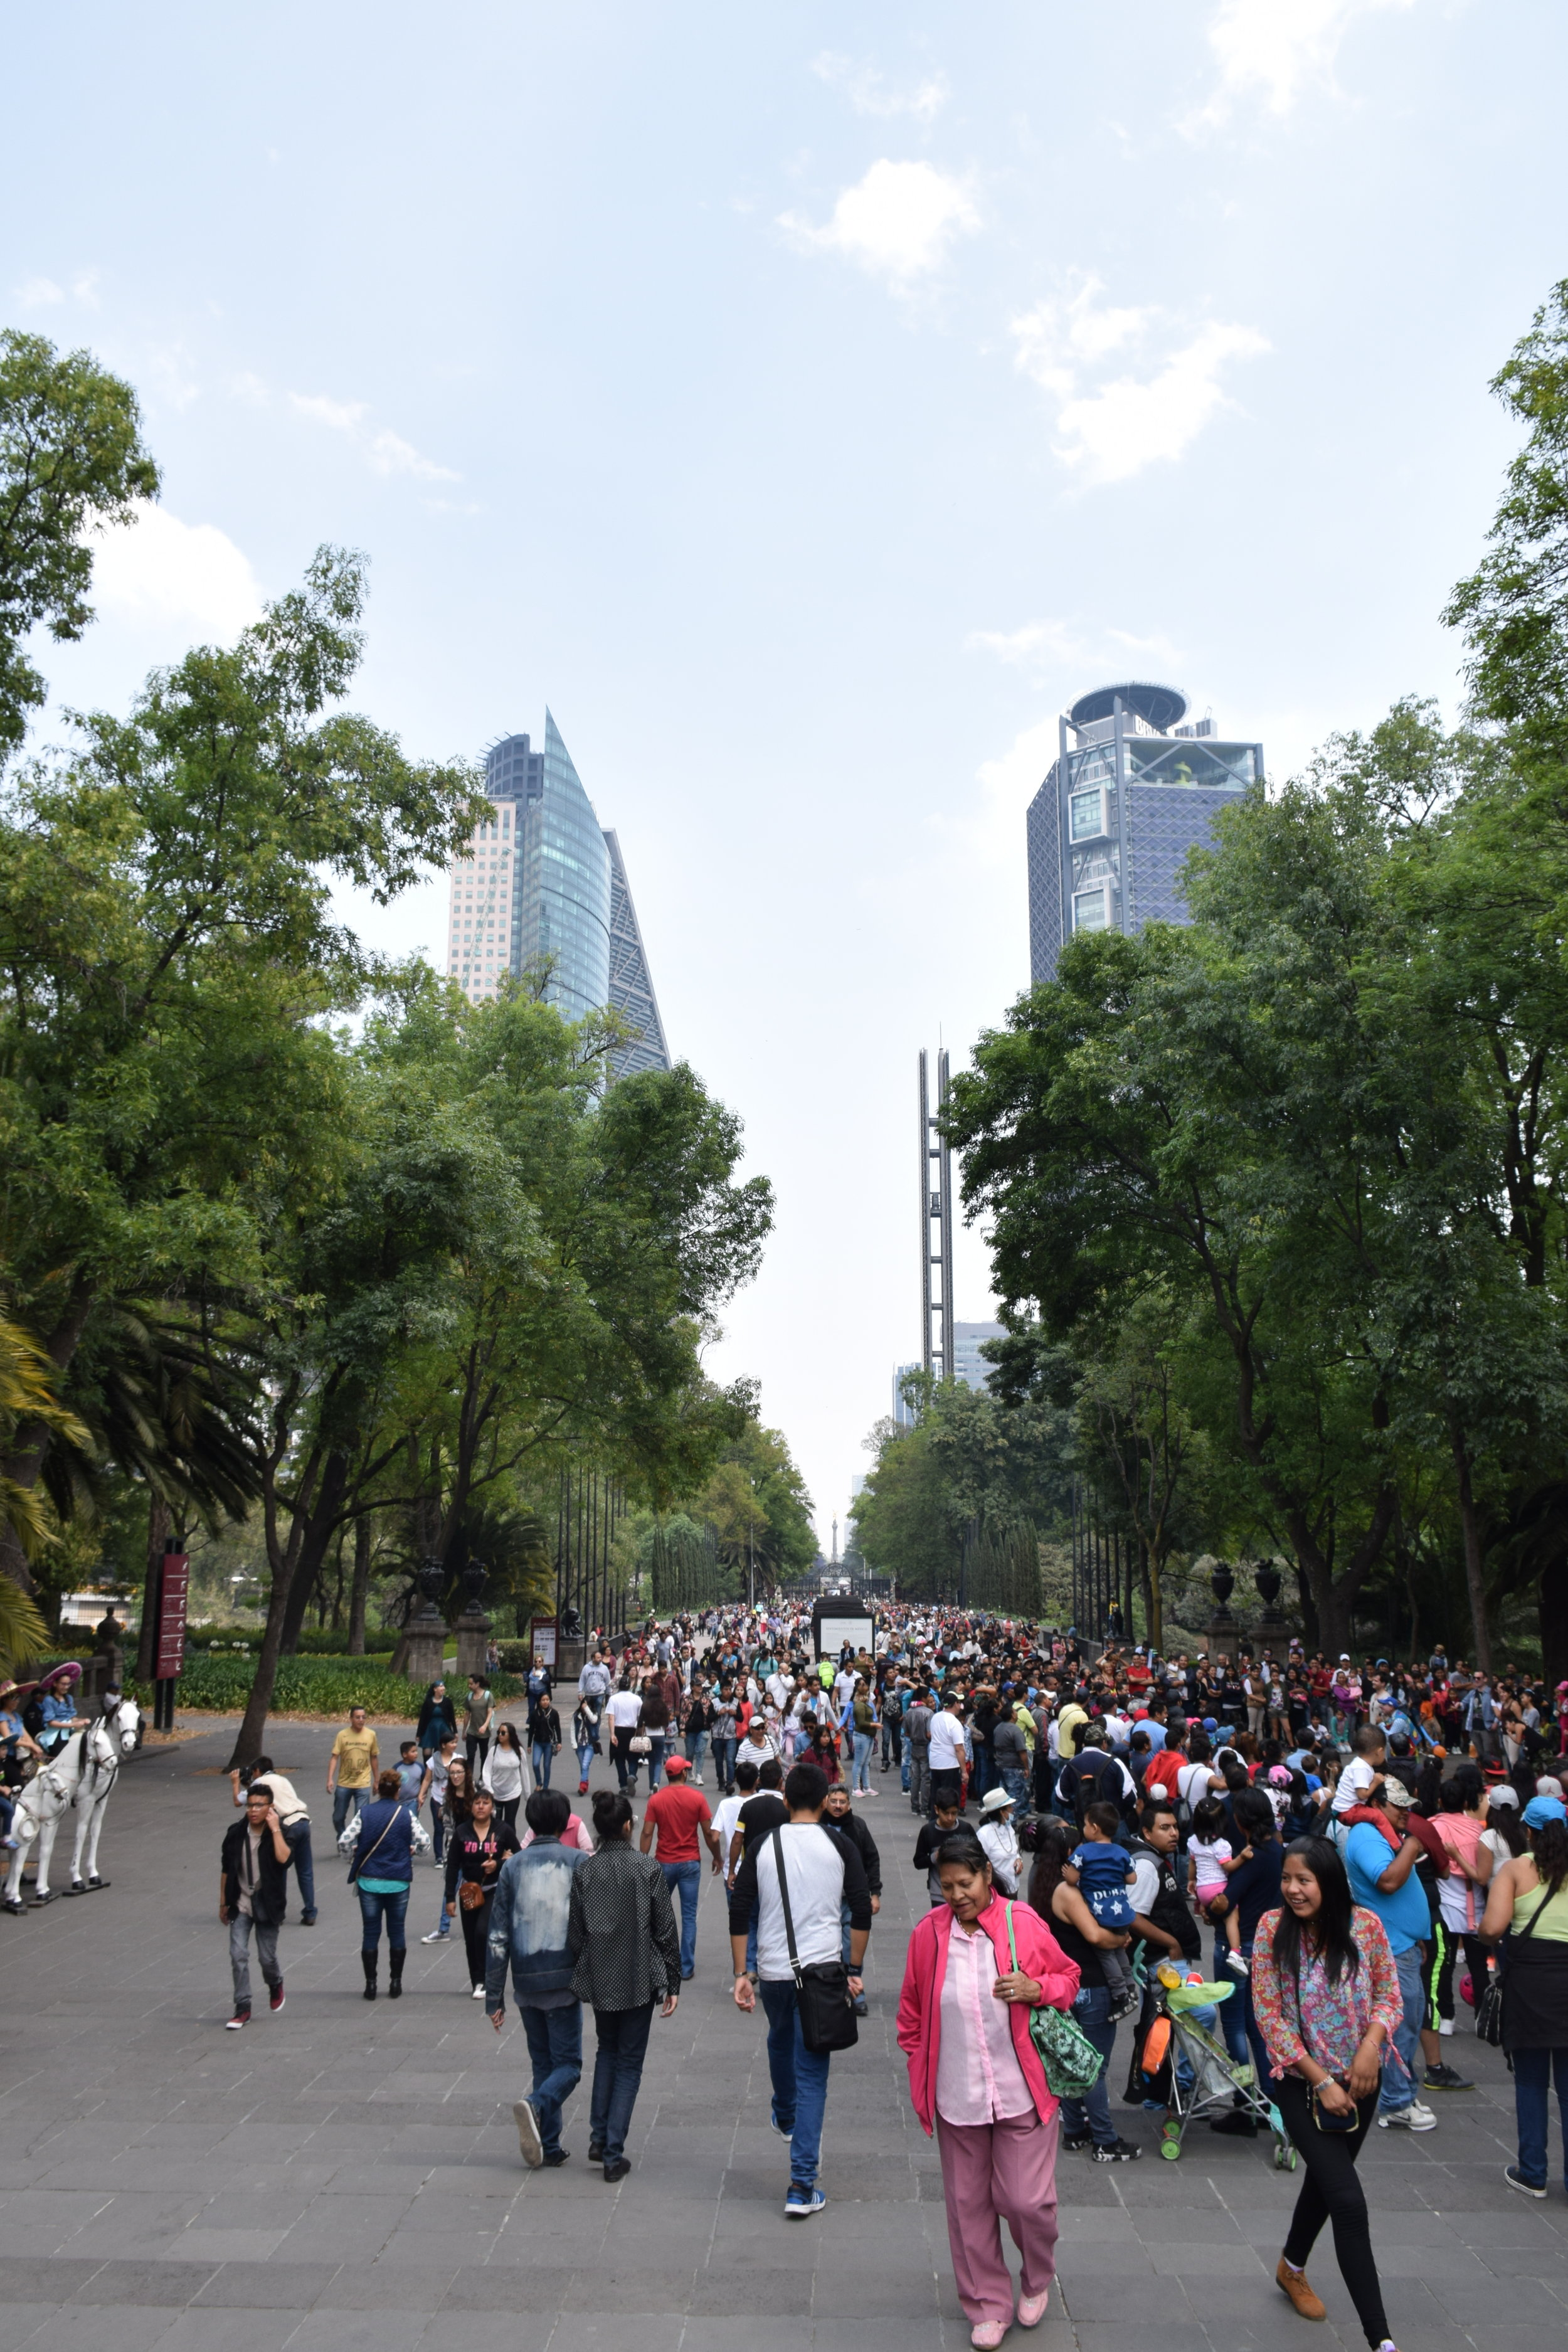 The museum was in the massive park in the city, El Bosque de Chapultepec. On Sundays, it's clearly the place to be.